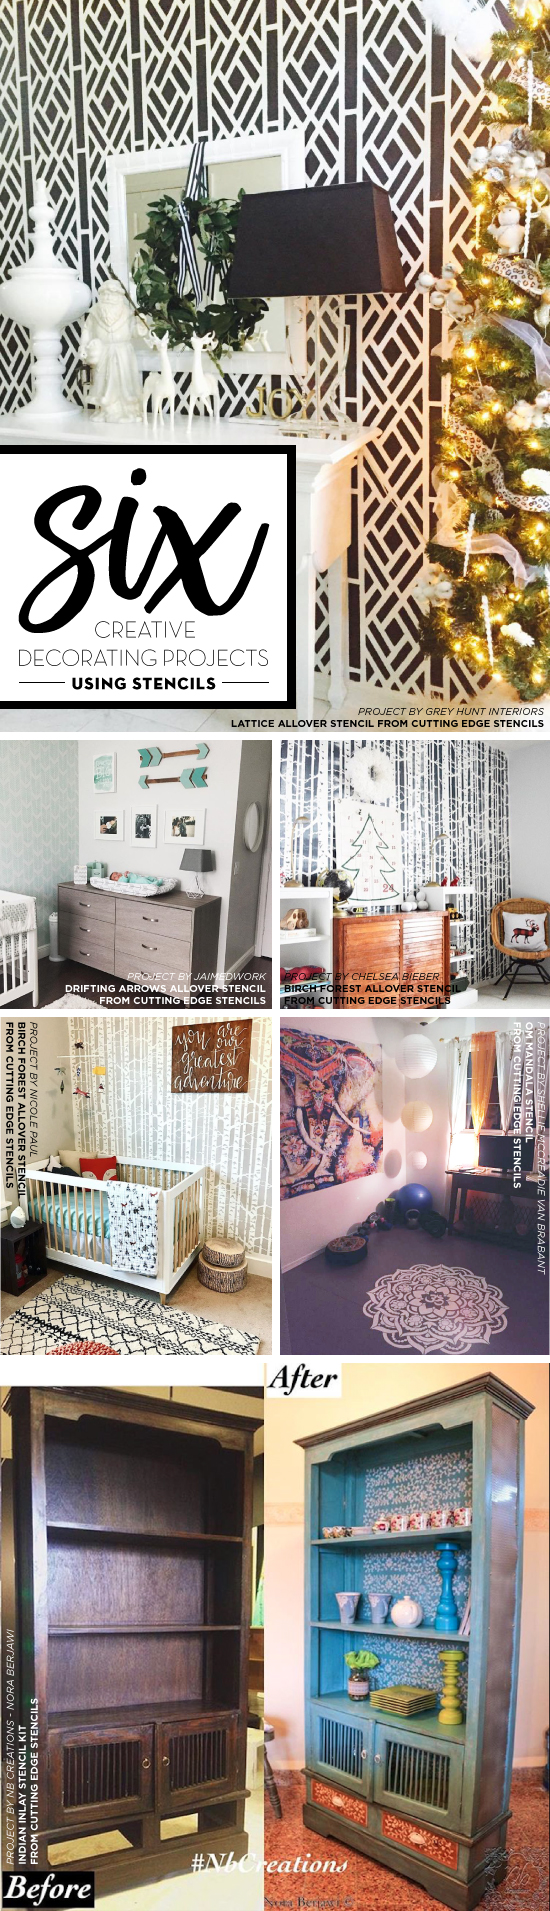 Six creative decorating projects using stencils stencil stories cutting edge stencils shares diy decorating projects using our stencil designs for walls and furniture amipublicfo Image collections